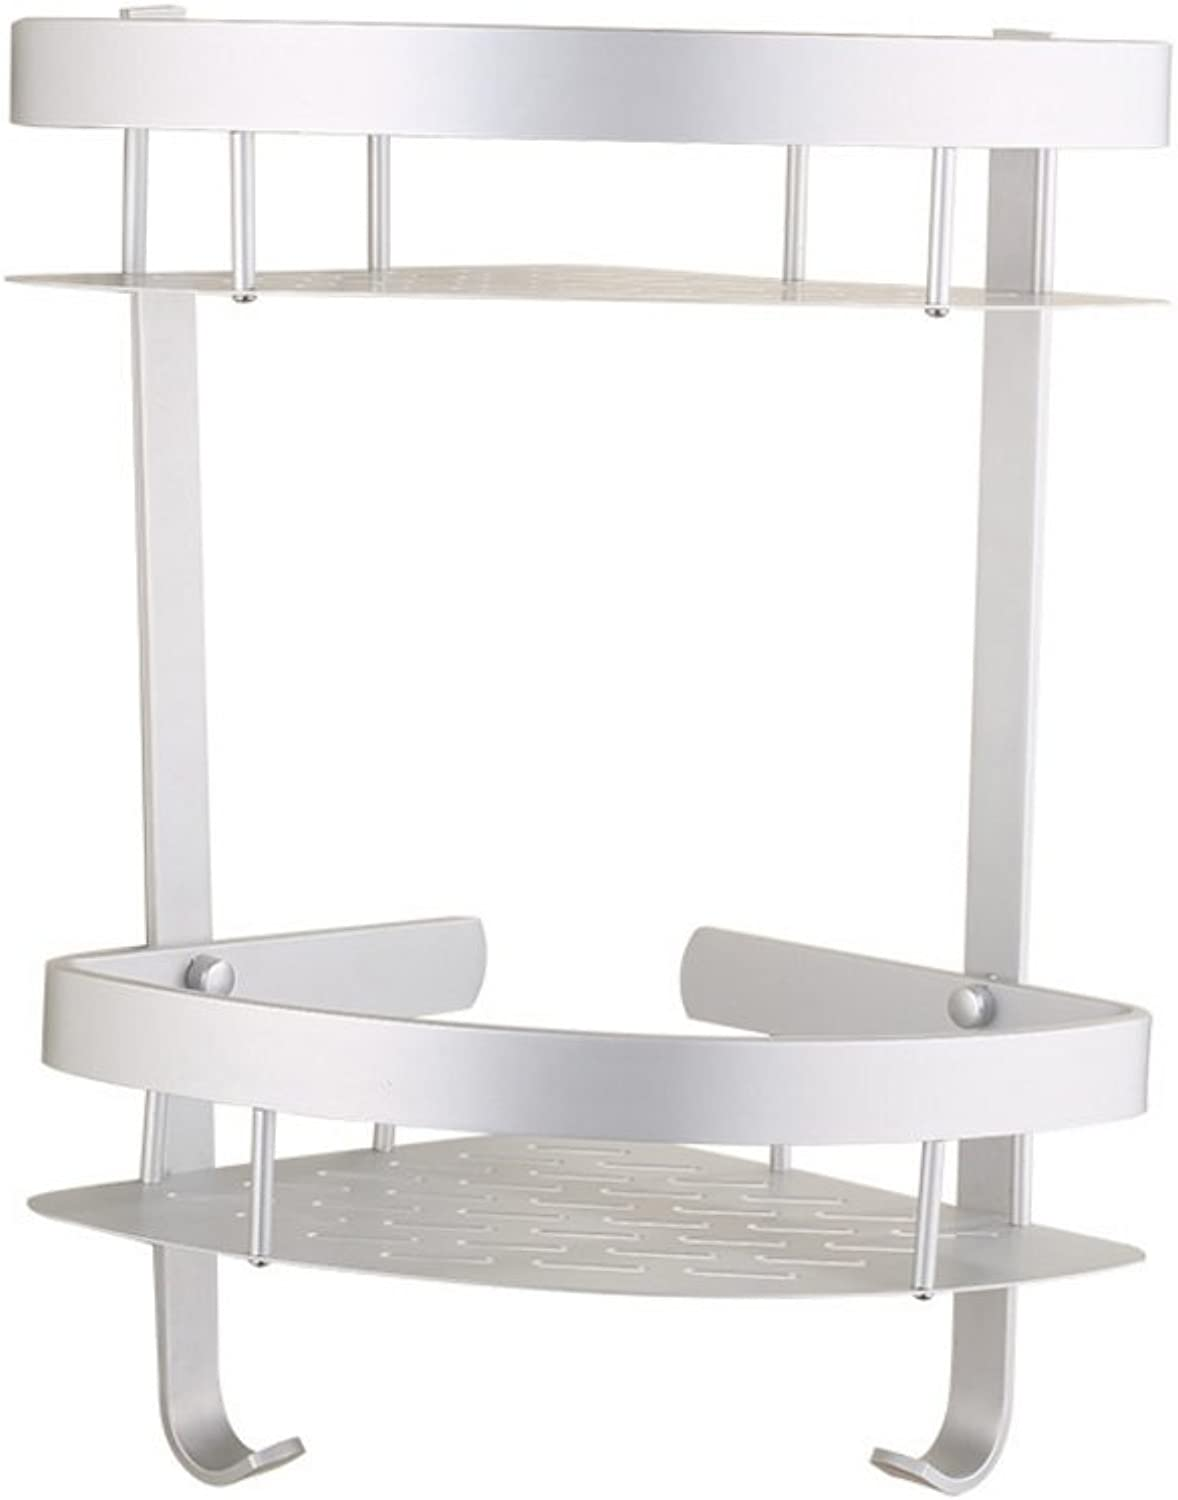 Bathroom Double Rack, Toilet Triangle Storage Rack, Bathroom Accessories.